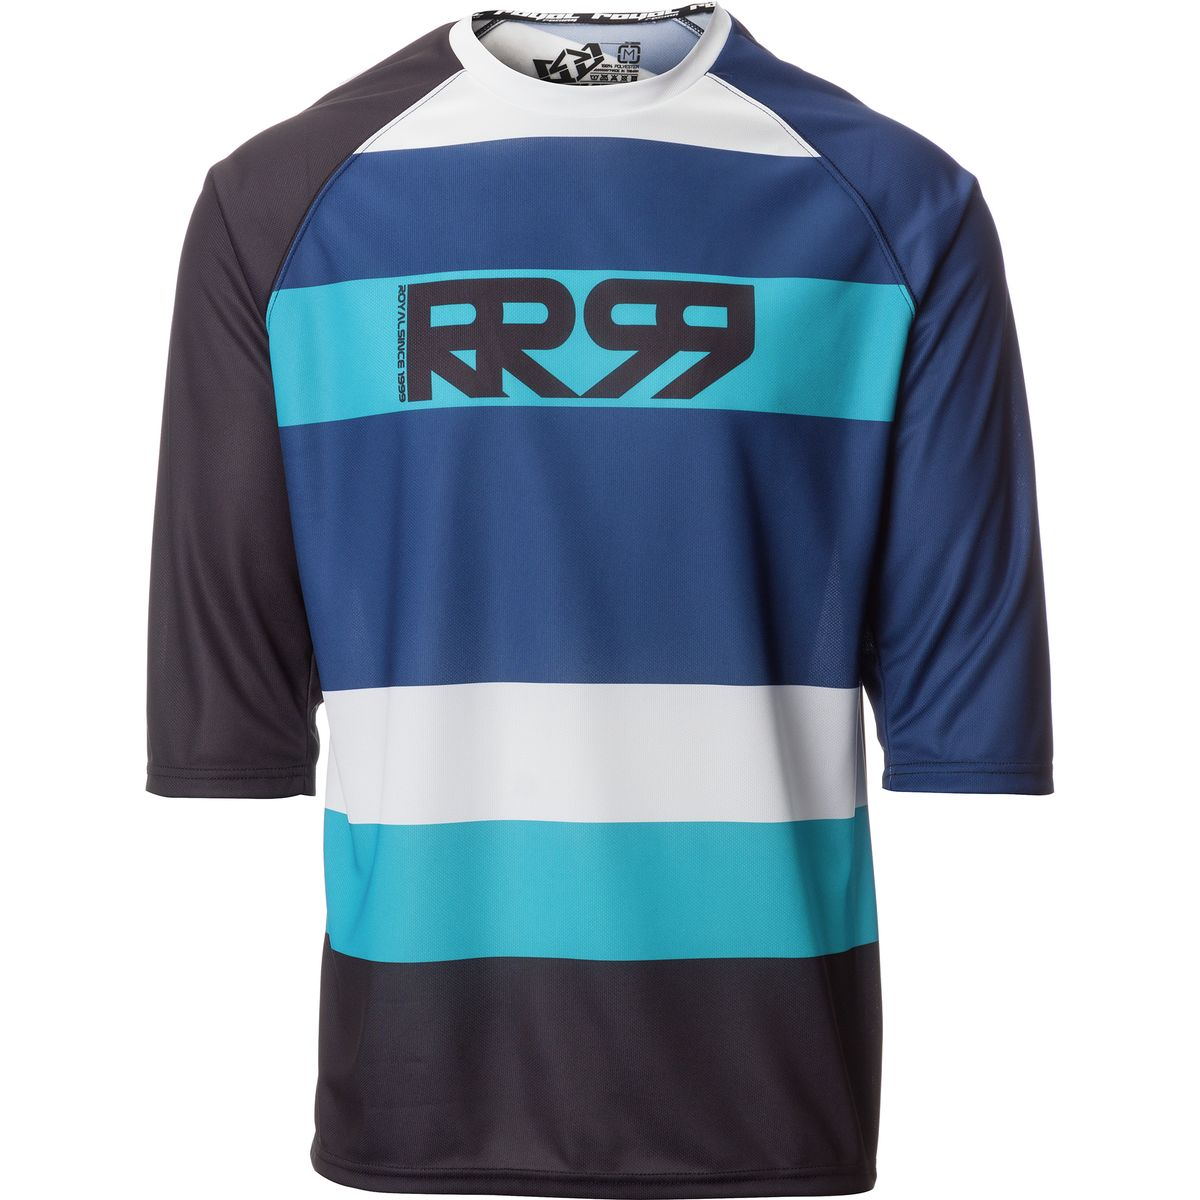 Royal Racing Drift Jersey 34 Sleeve Mens